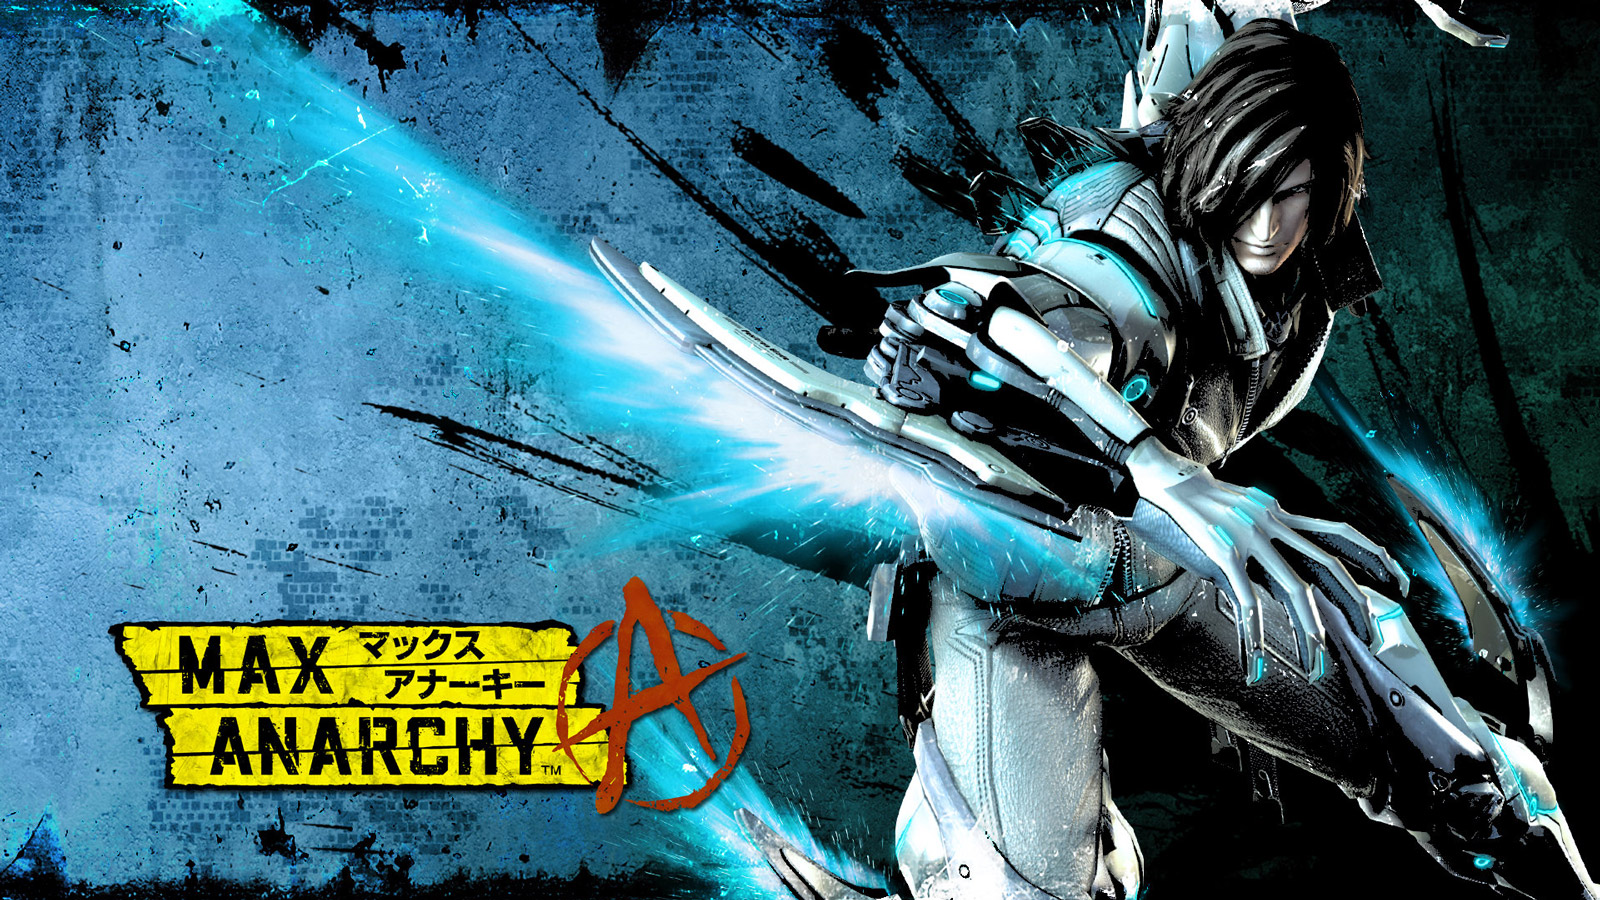 Free Anarchy Reigns Wallpaper in 1600x900